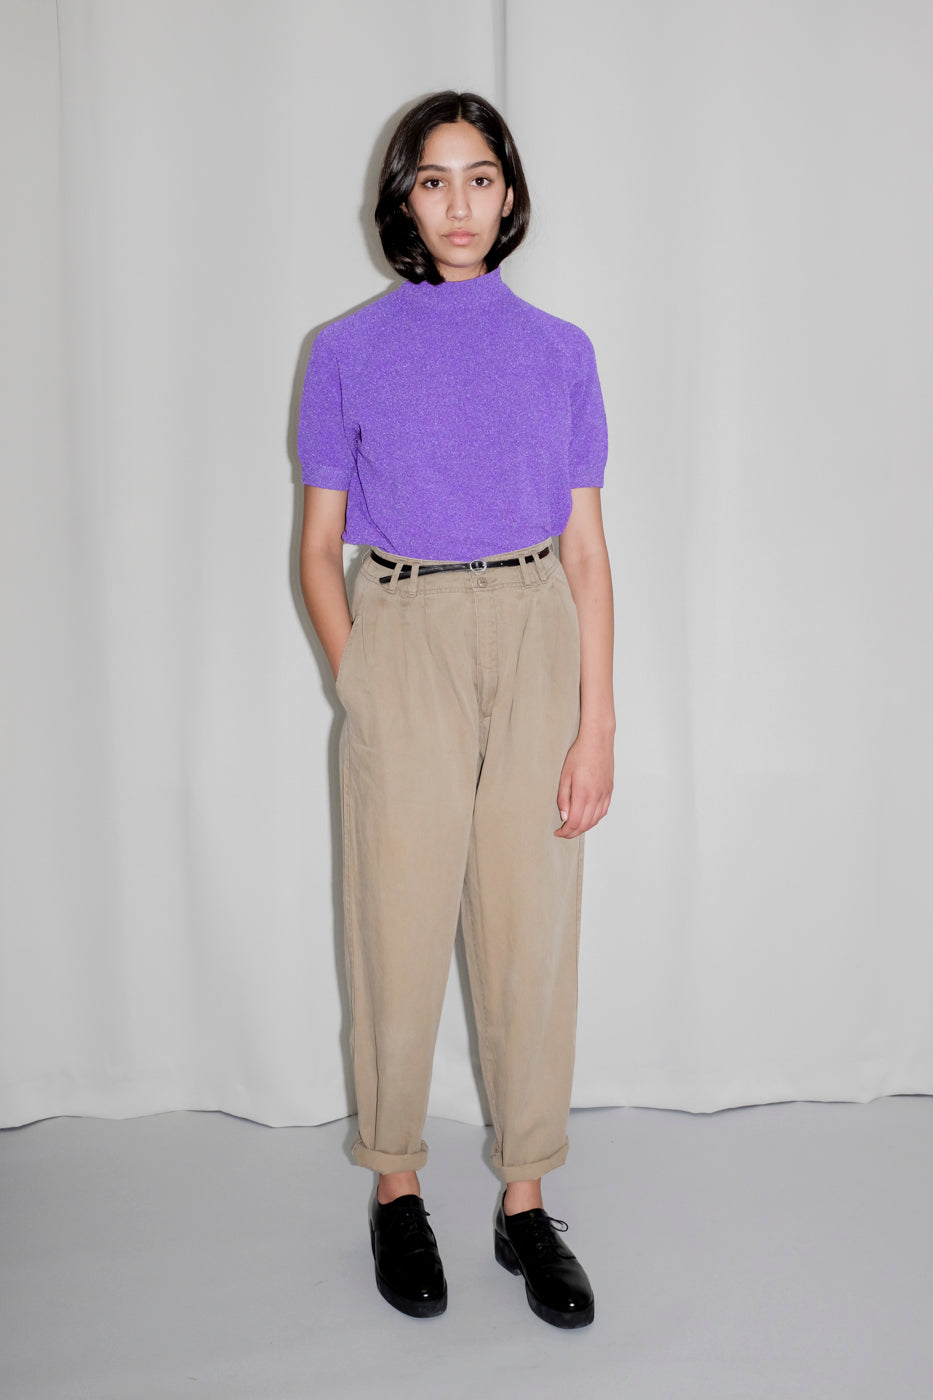 0112_LILAC VINTAGE SWEATER